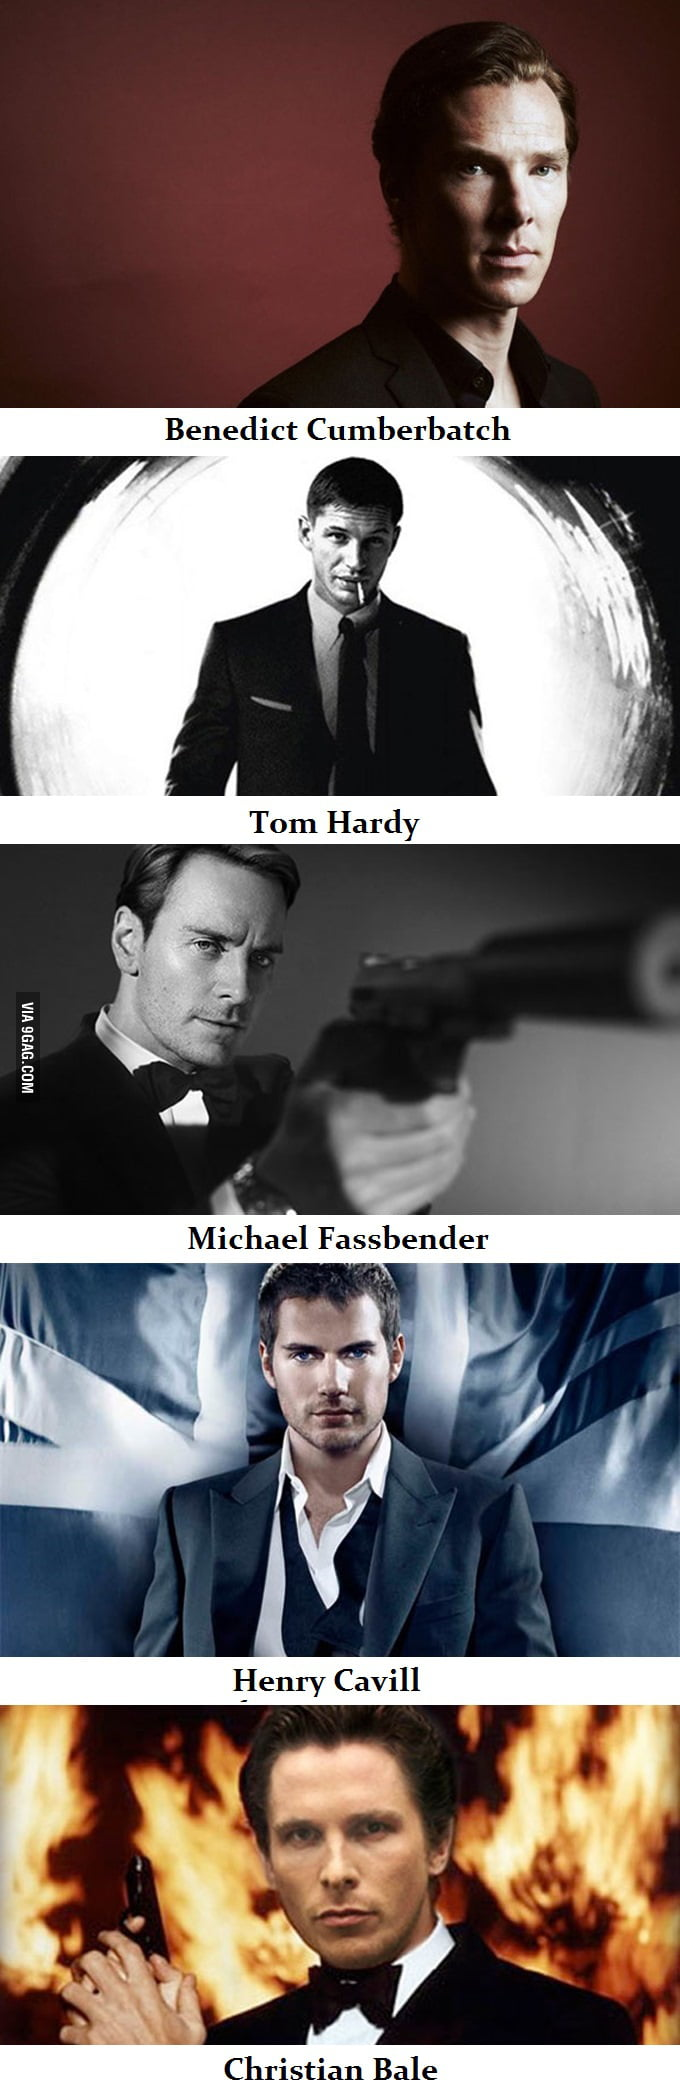 5 actors I'd love to see in the next James Bond movie. Who's yours?